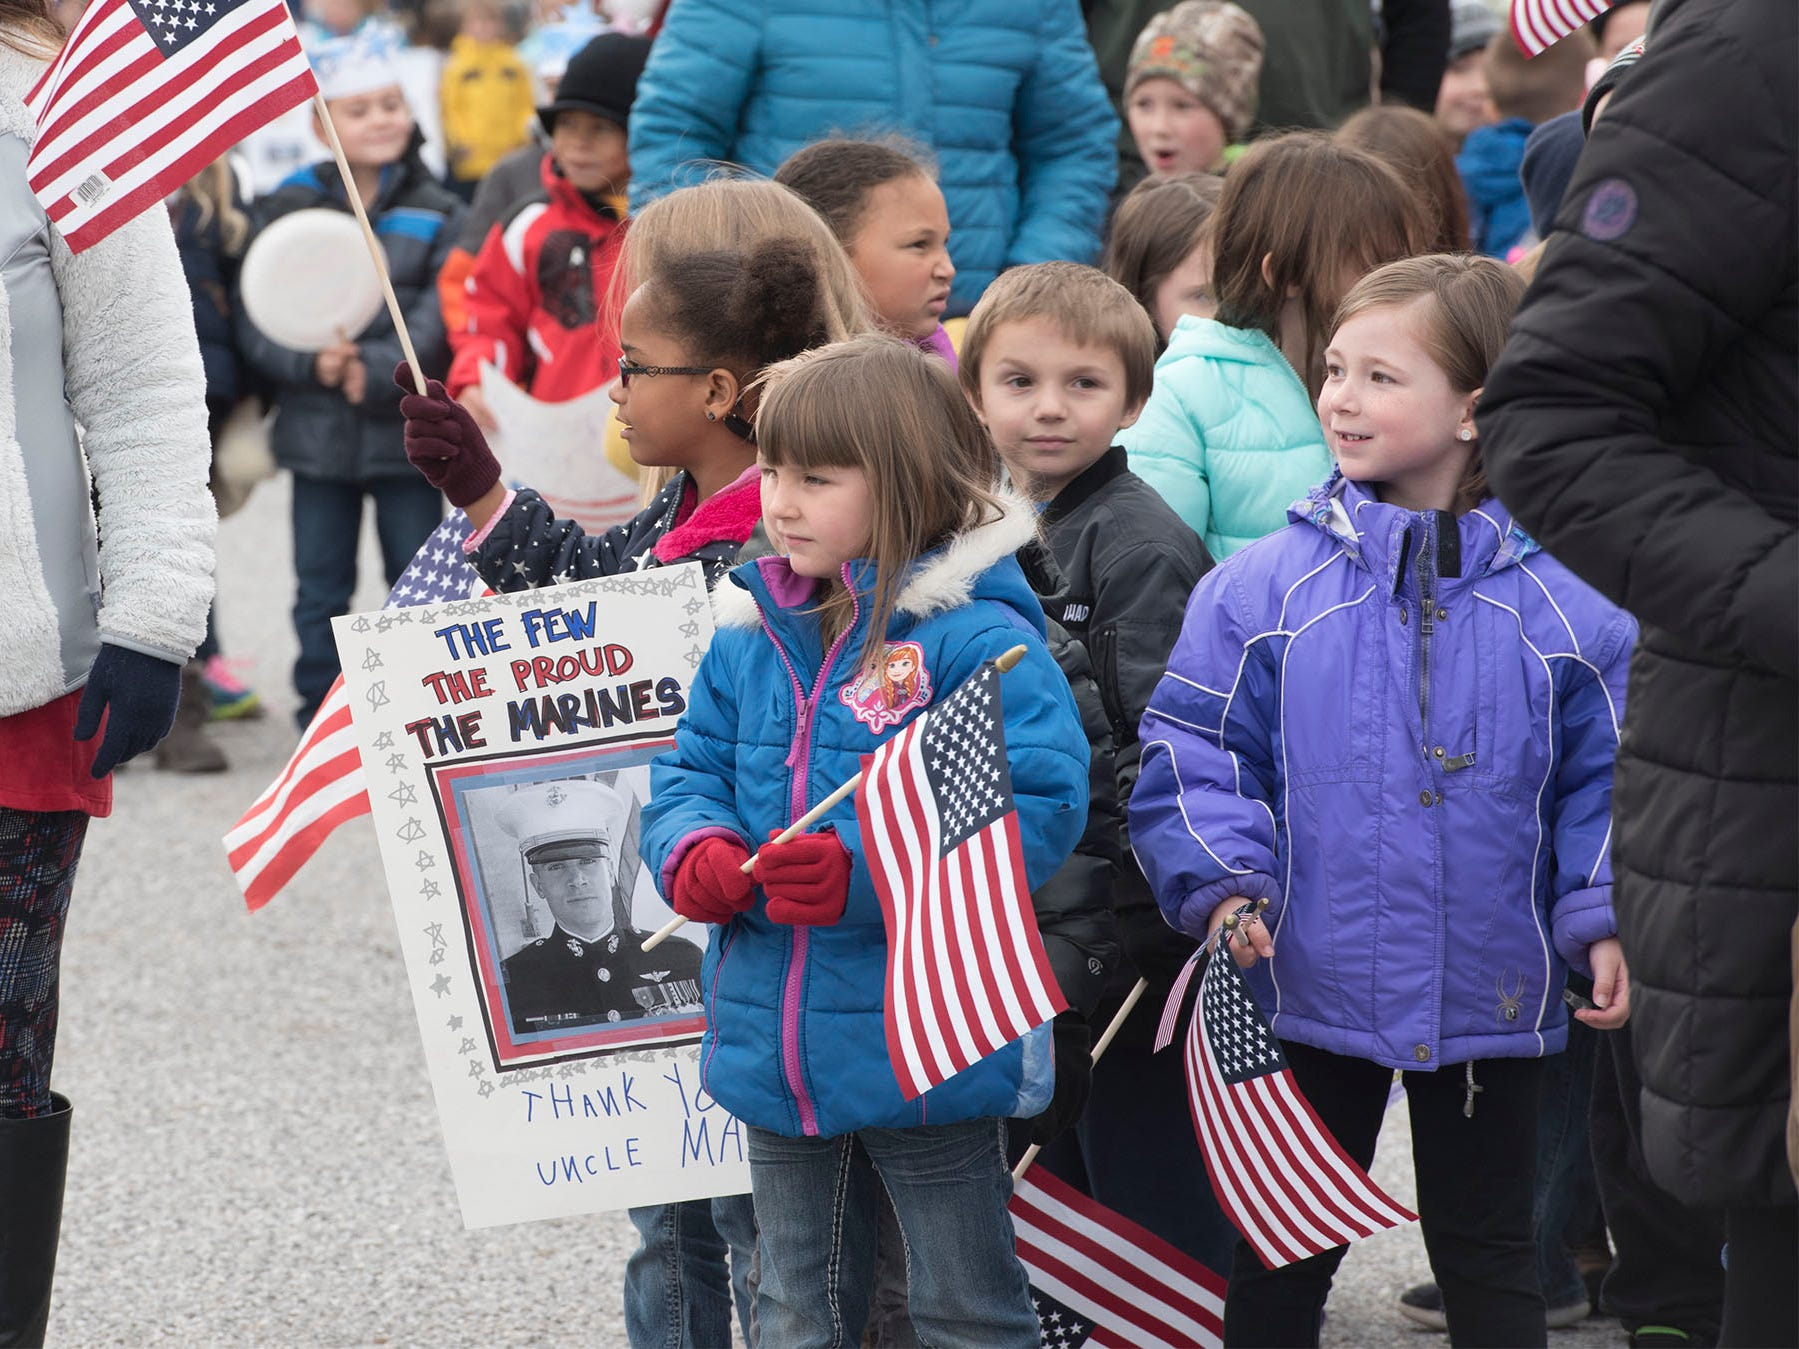 Students walk during a Veterans Day Parade sponsored by James Burd Elementary School, Shippensburg. Last year, Burd hosted its own parade because the Shippensburg parade was canceled. Now the event is becoming a tradition.